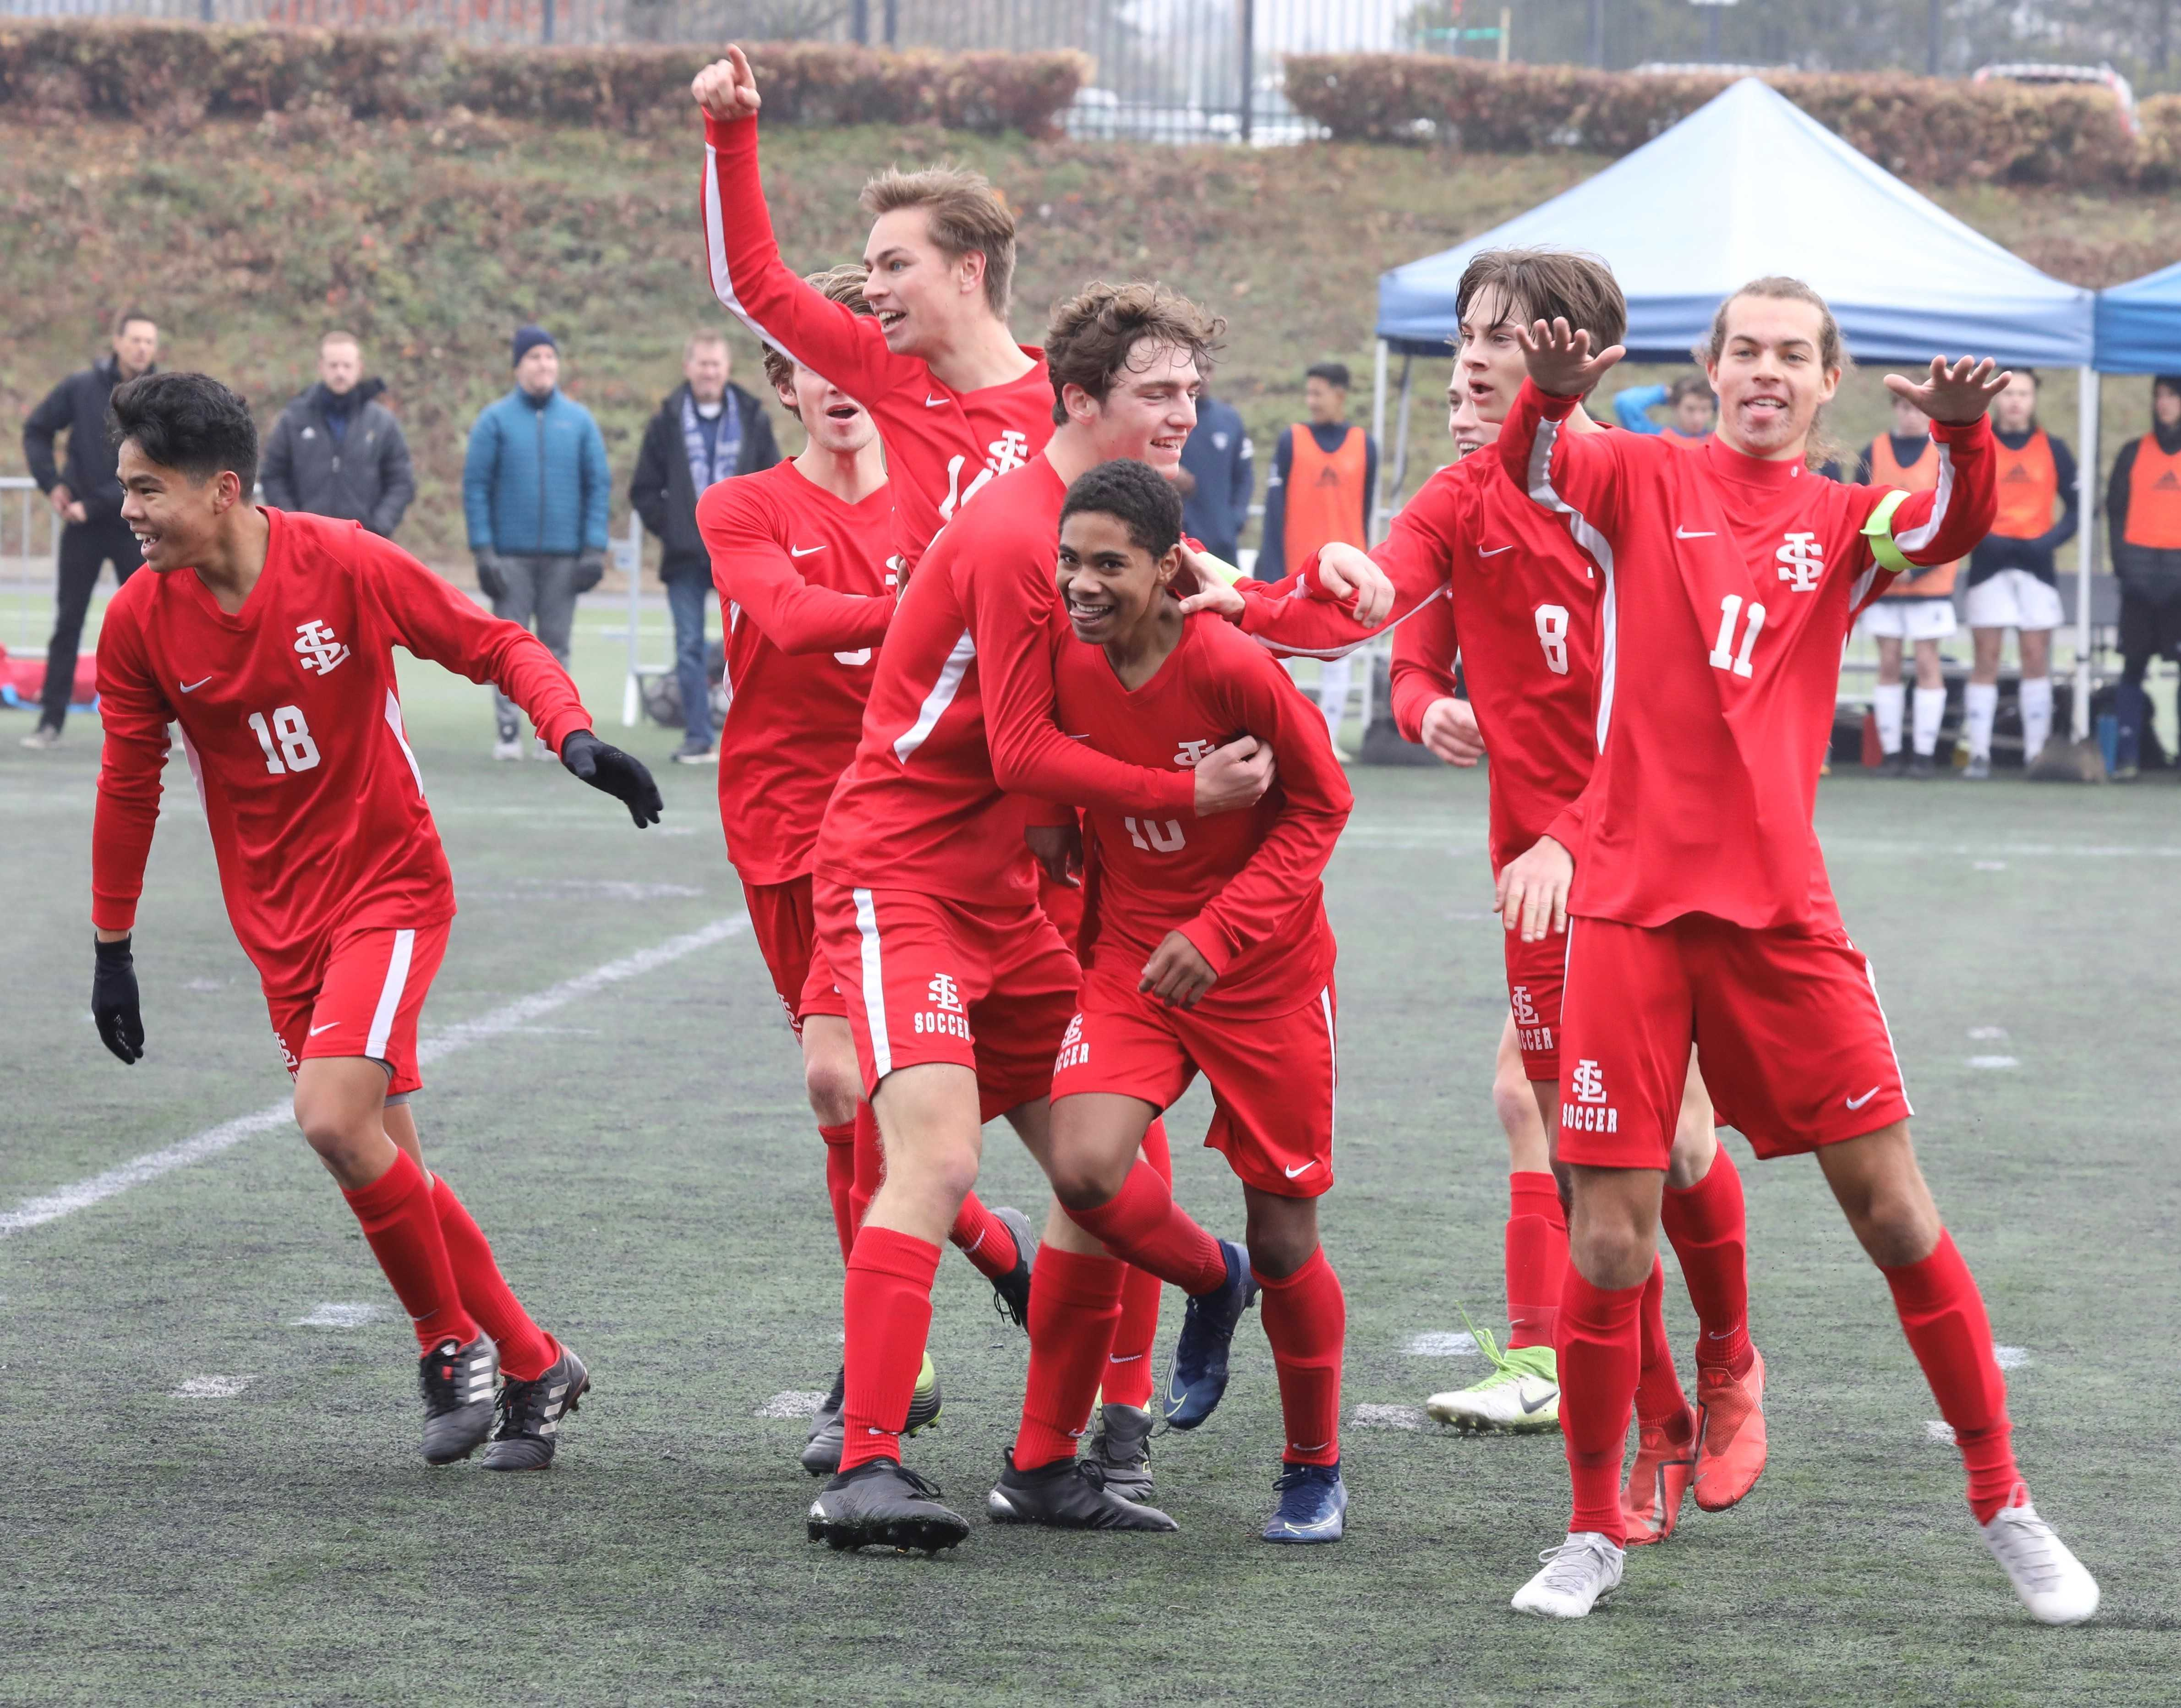 La Salle Prep's Mizael Harris (10) celebrates the first of his two goals Saturday. (Photo by Norm Maves Jr.)